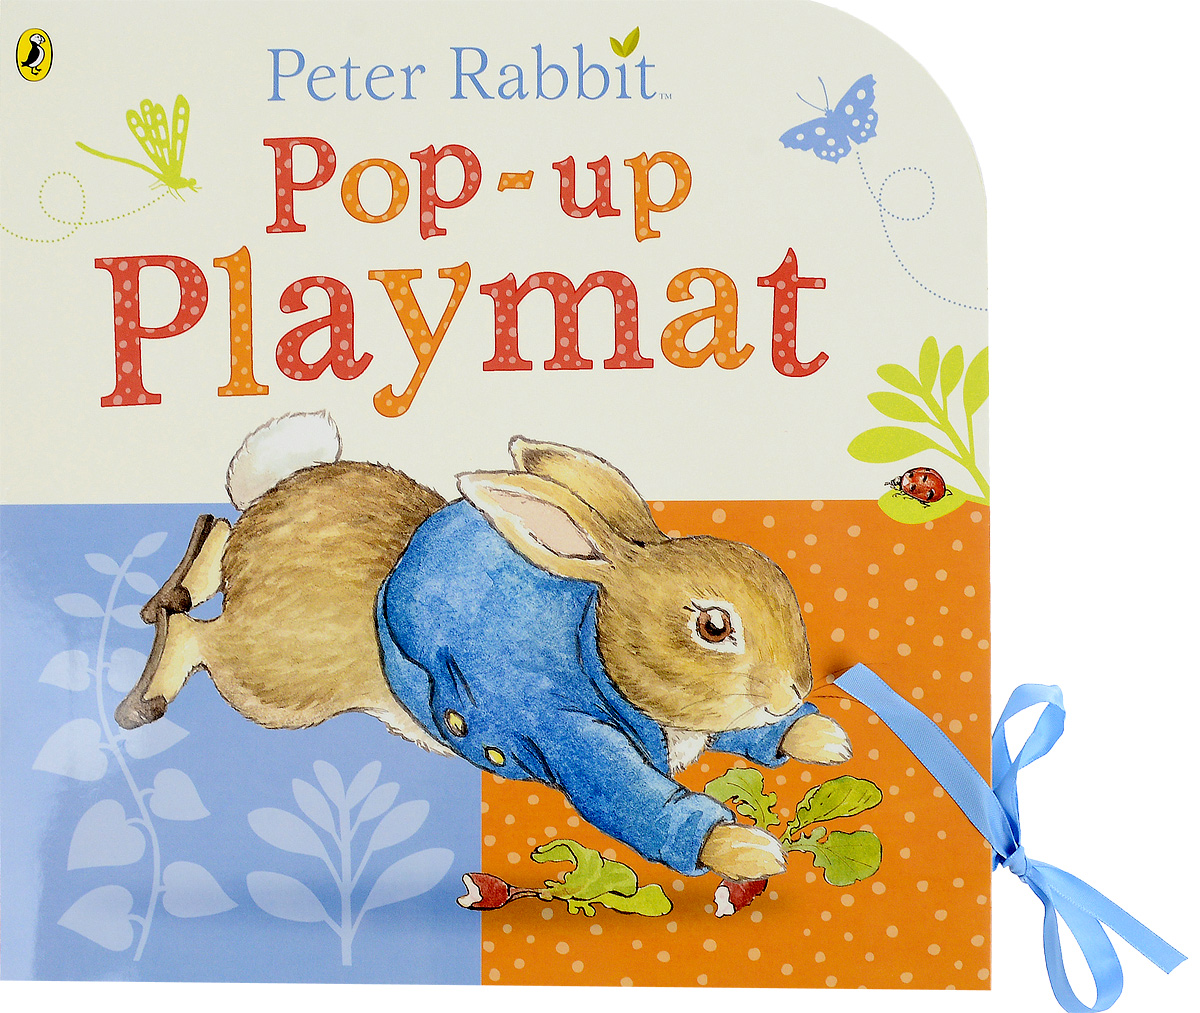 Pop-up Playmat touch and feel